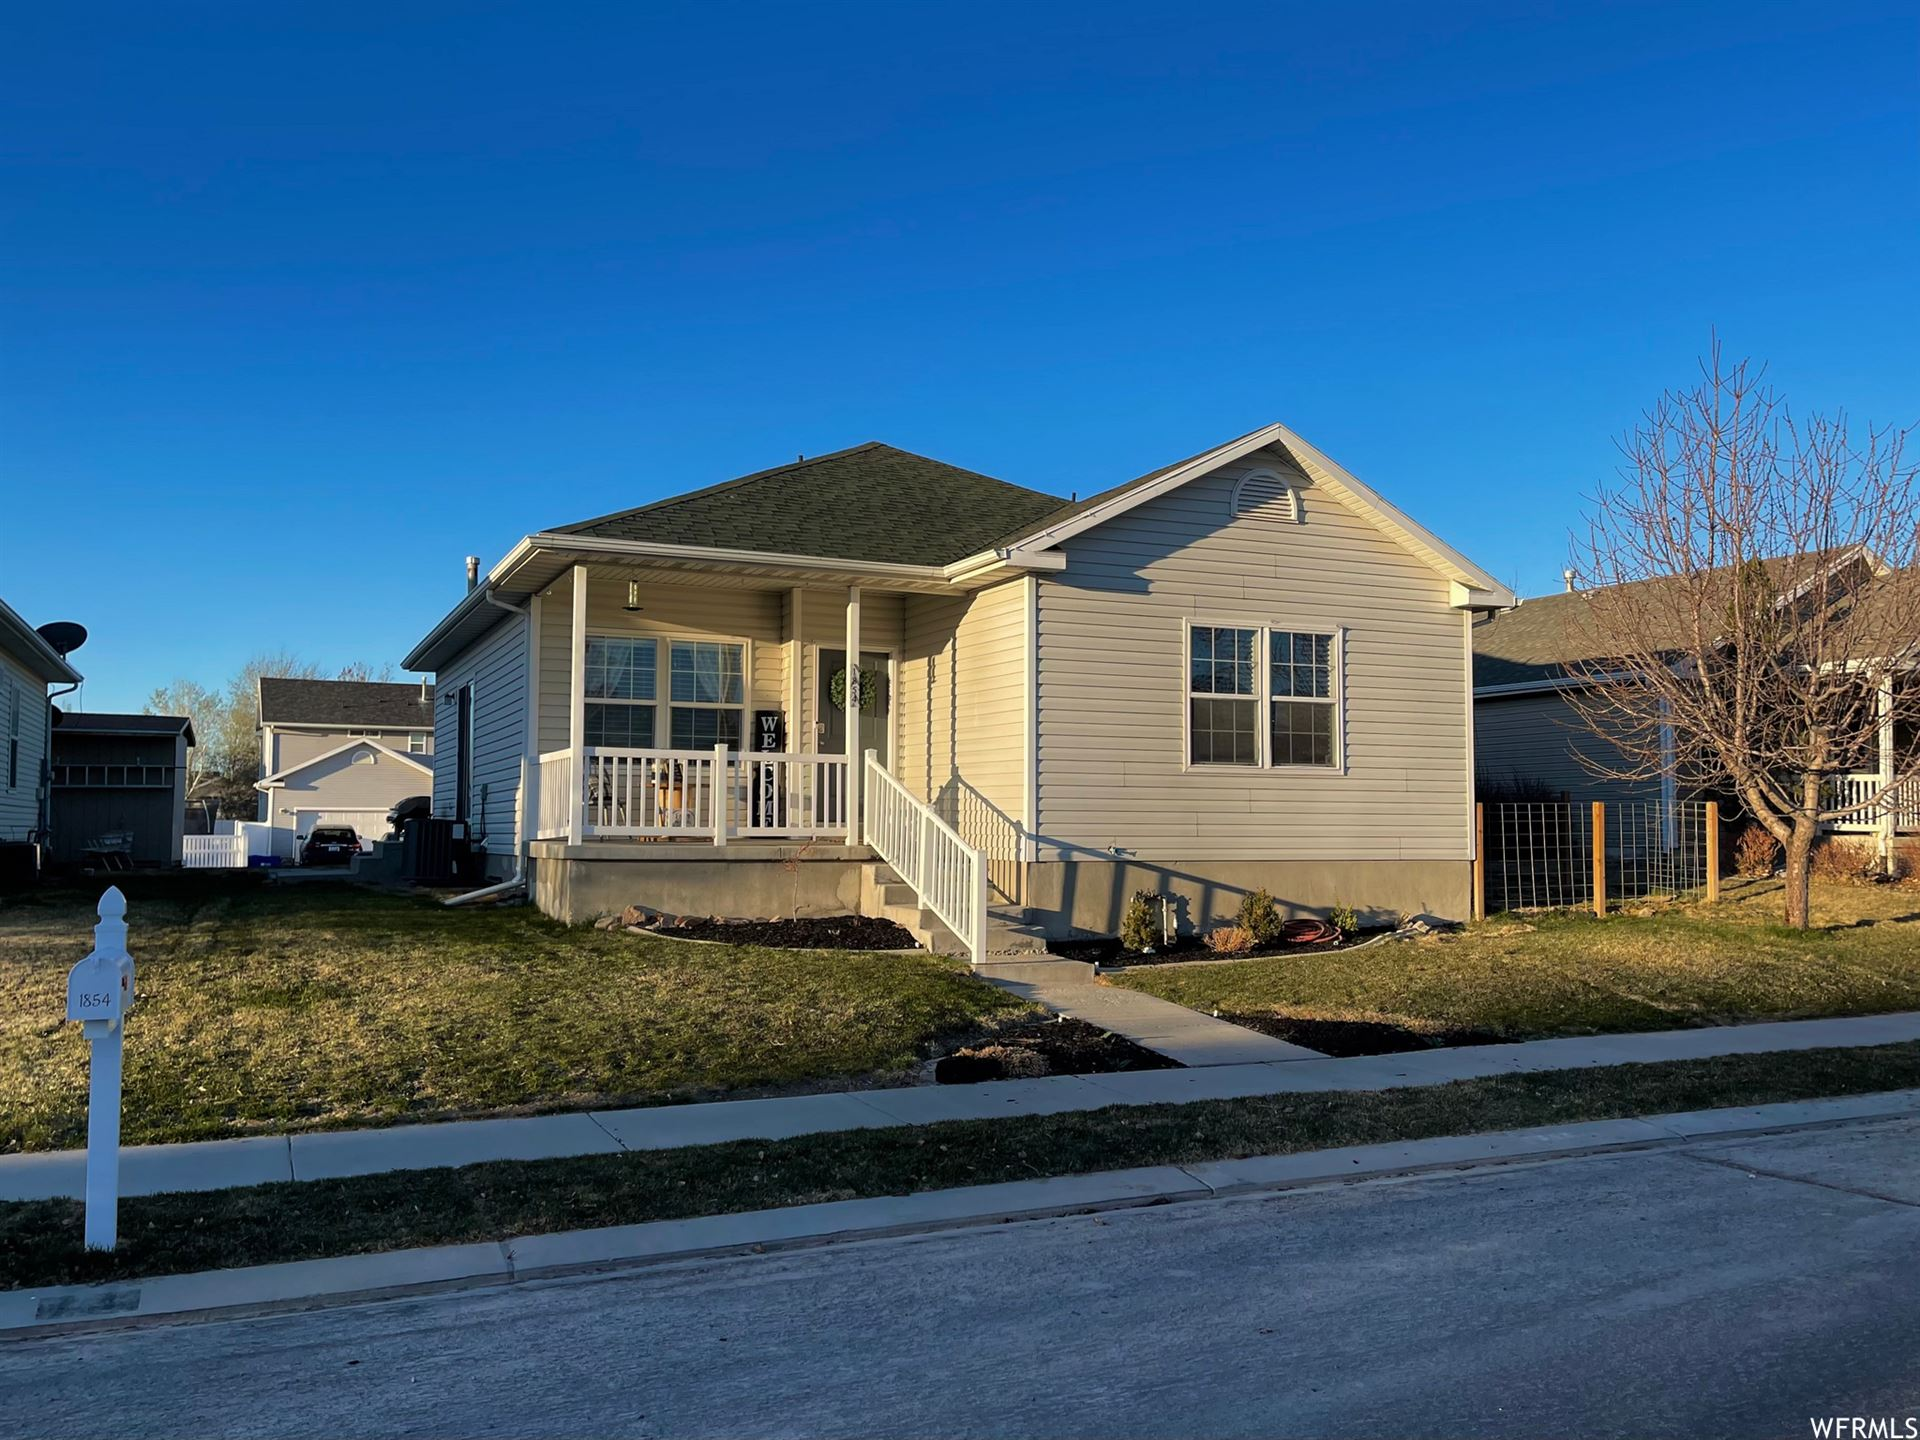 Photo of 1854 E CEDAR ST #62, Eagle Mountain, UT 84005 (MLS # 1734861)